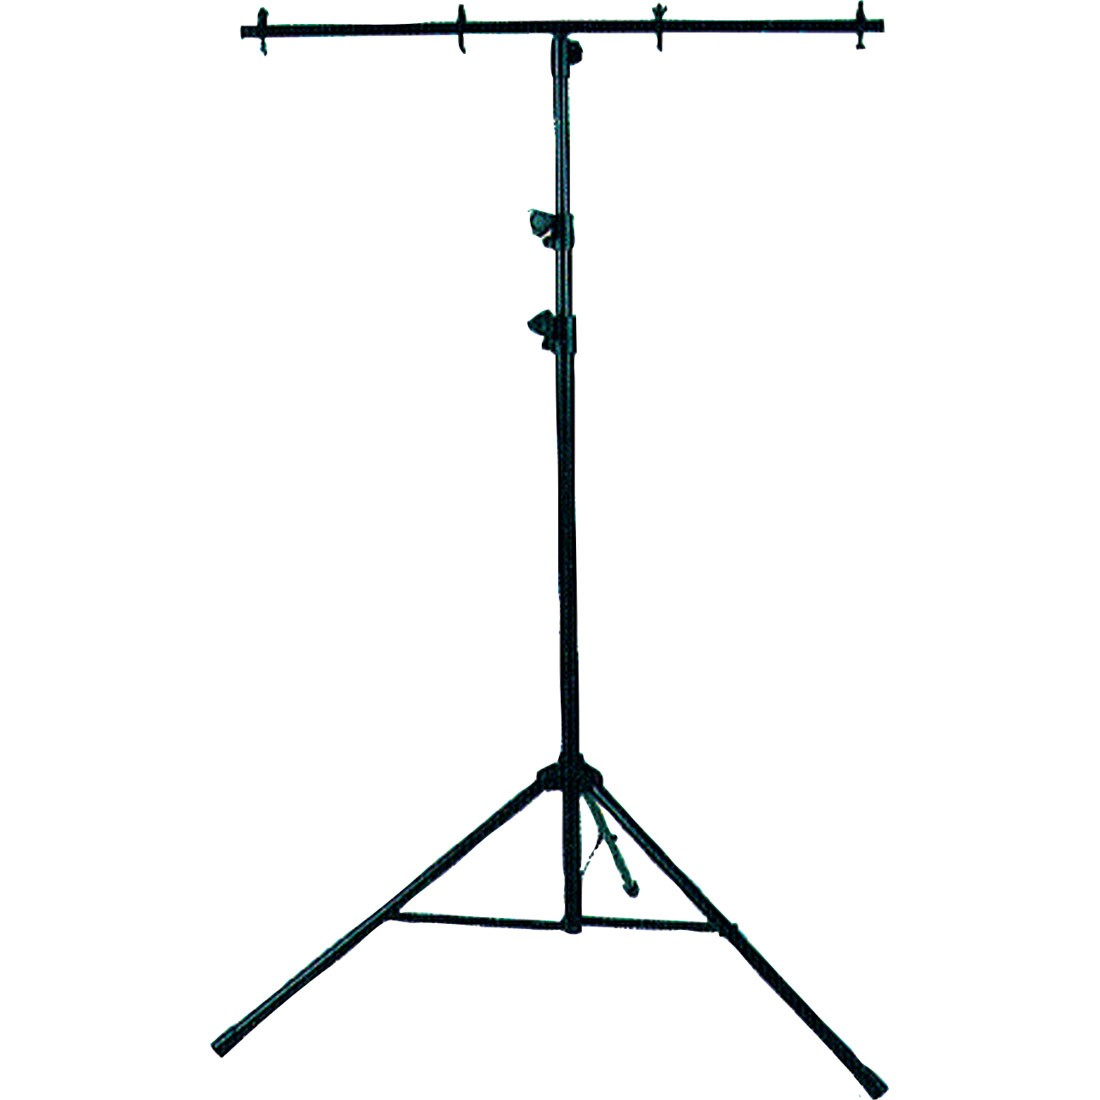 lts-6 lighting stand - stands light